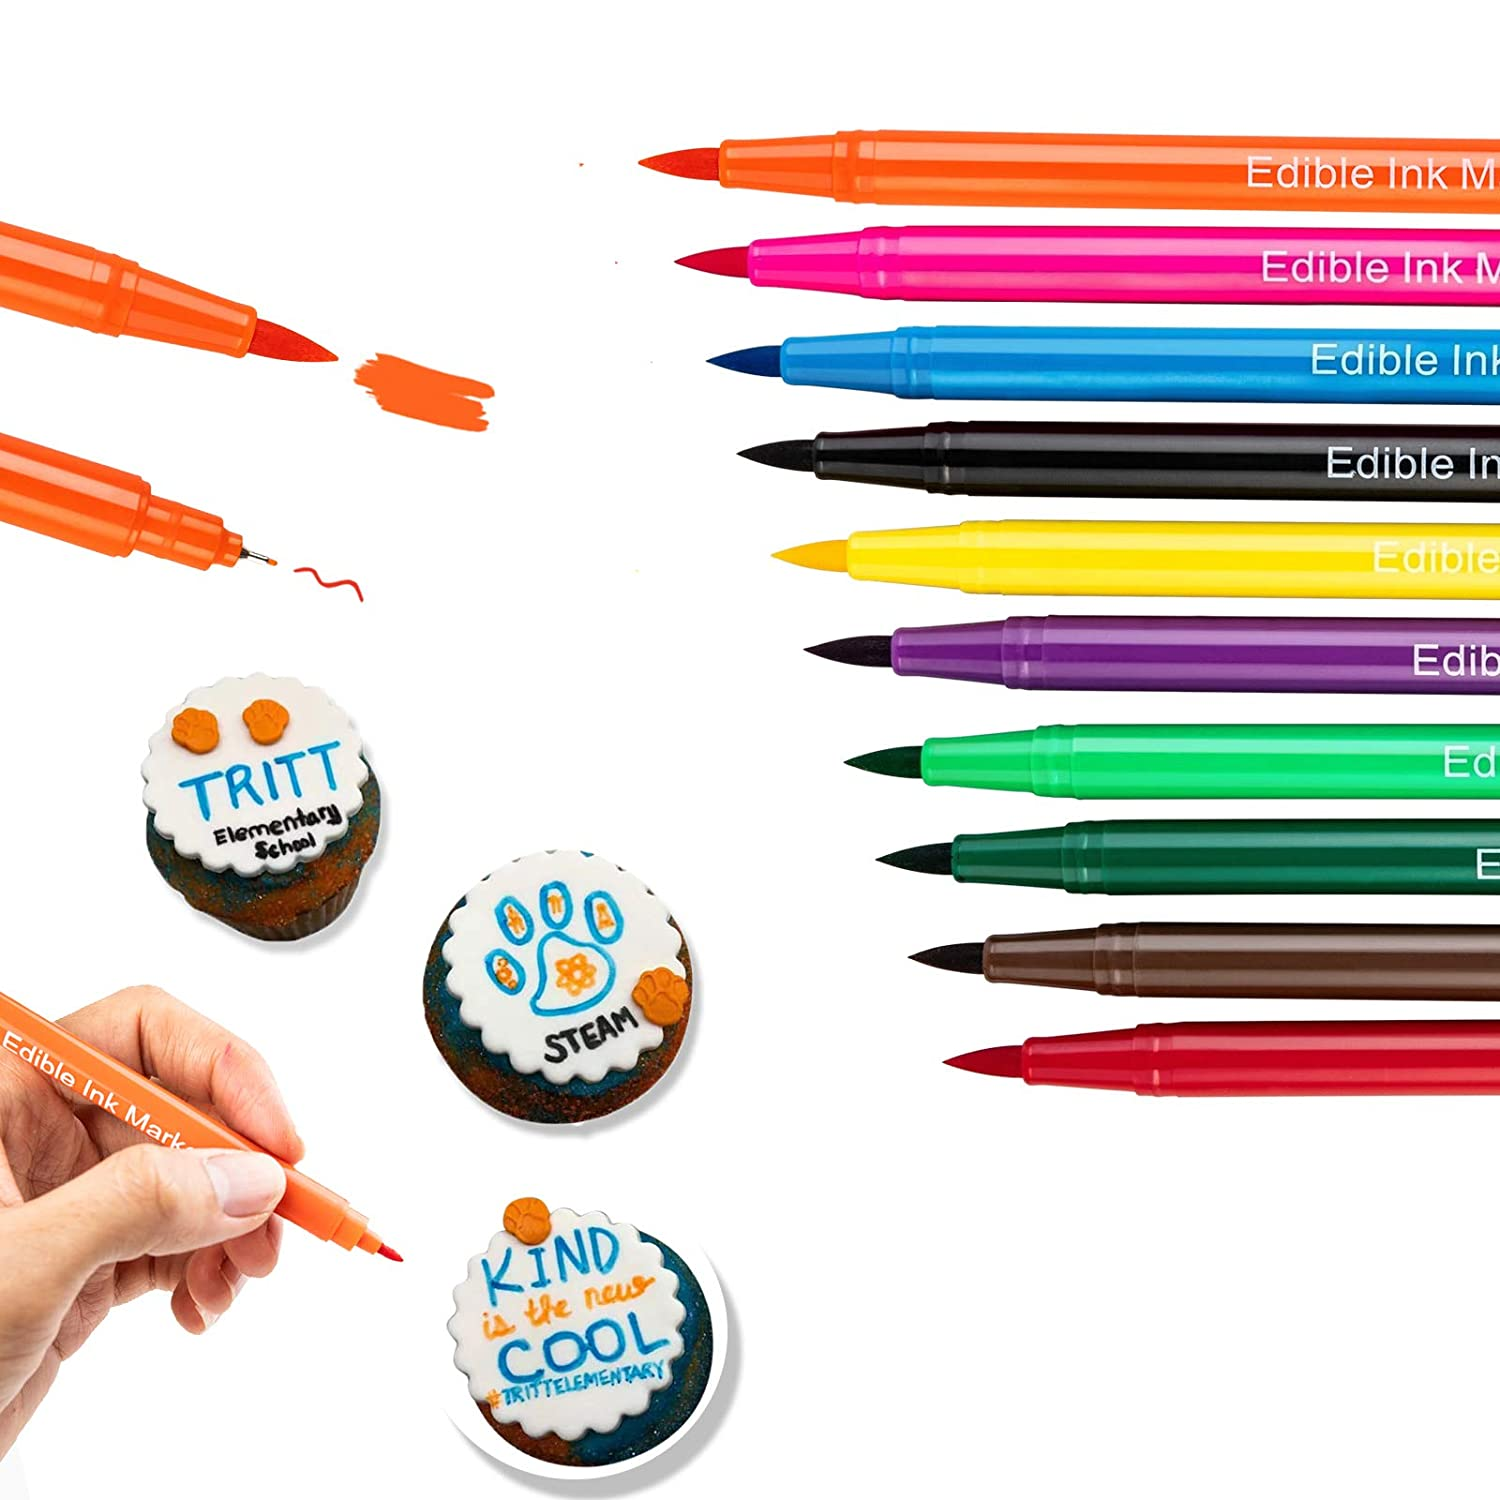 DOMISL Upgrade 10 Colors Food Coloring Marker Pens Dual Sided Edible Markers with Fine(0.5mm)and Thick Tip Food Grade Gourmet Writers for DIY Decorating Fondant Cakes Cookies Frosting Easter Eggs